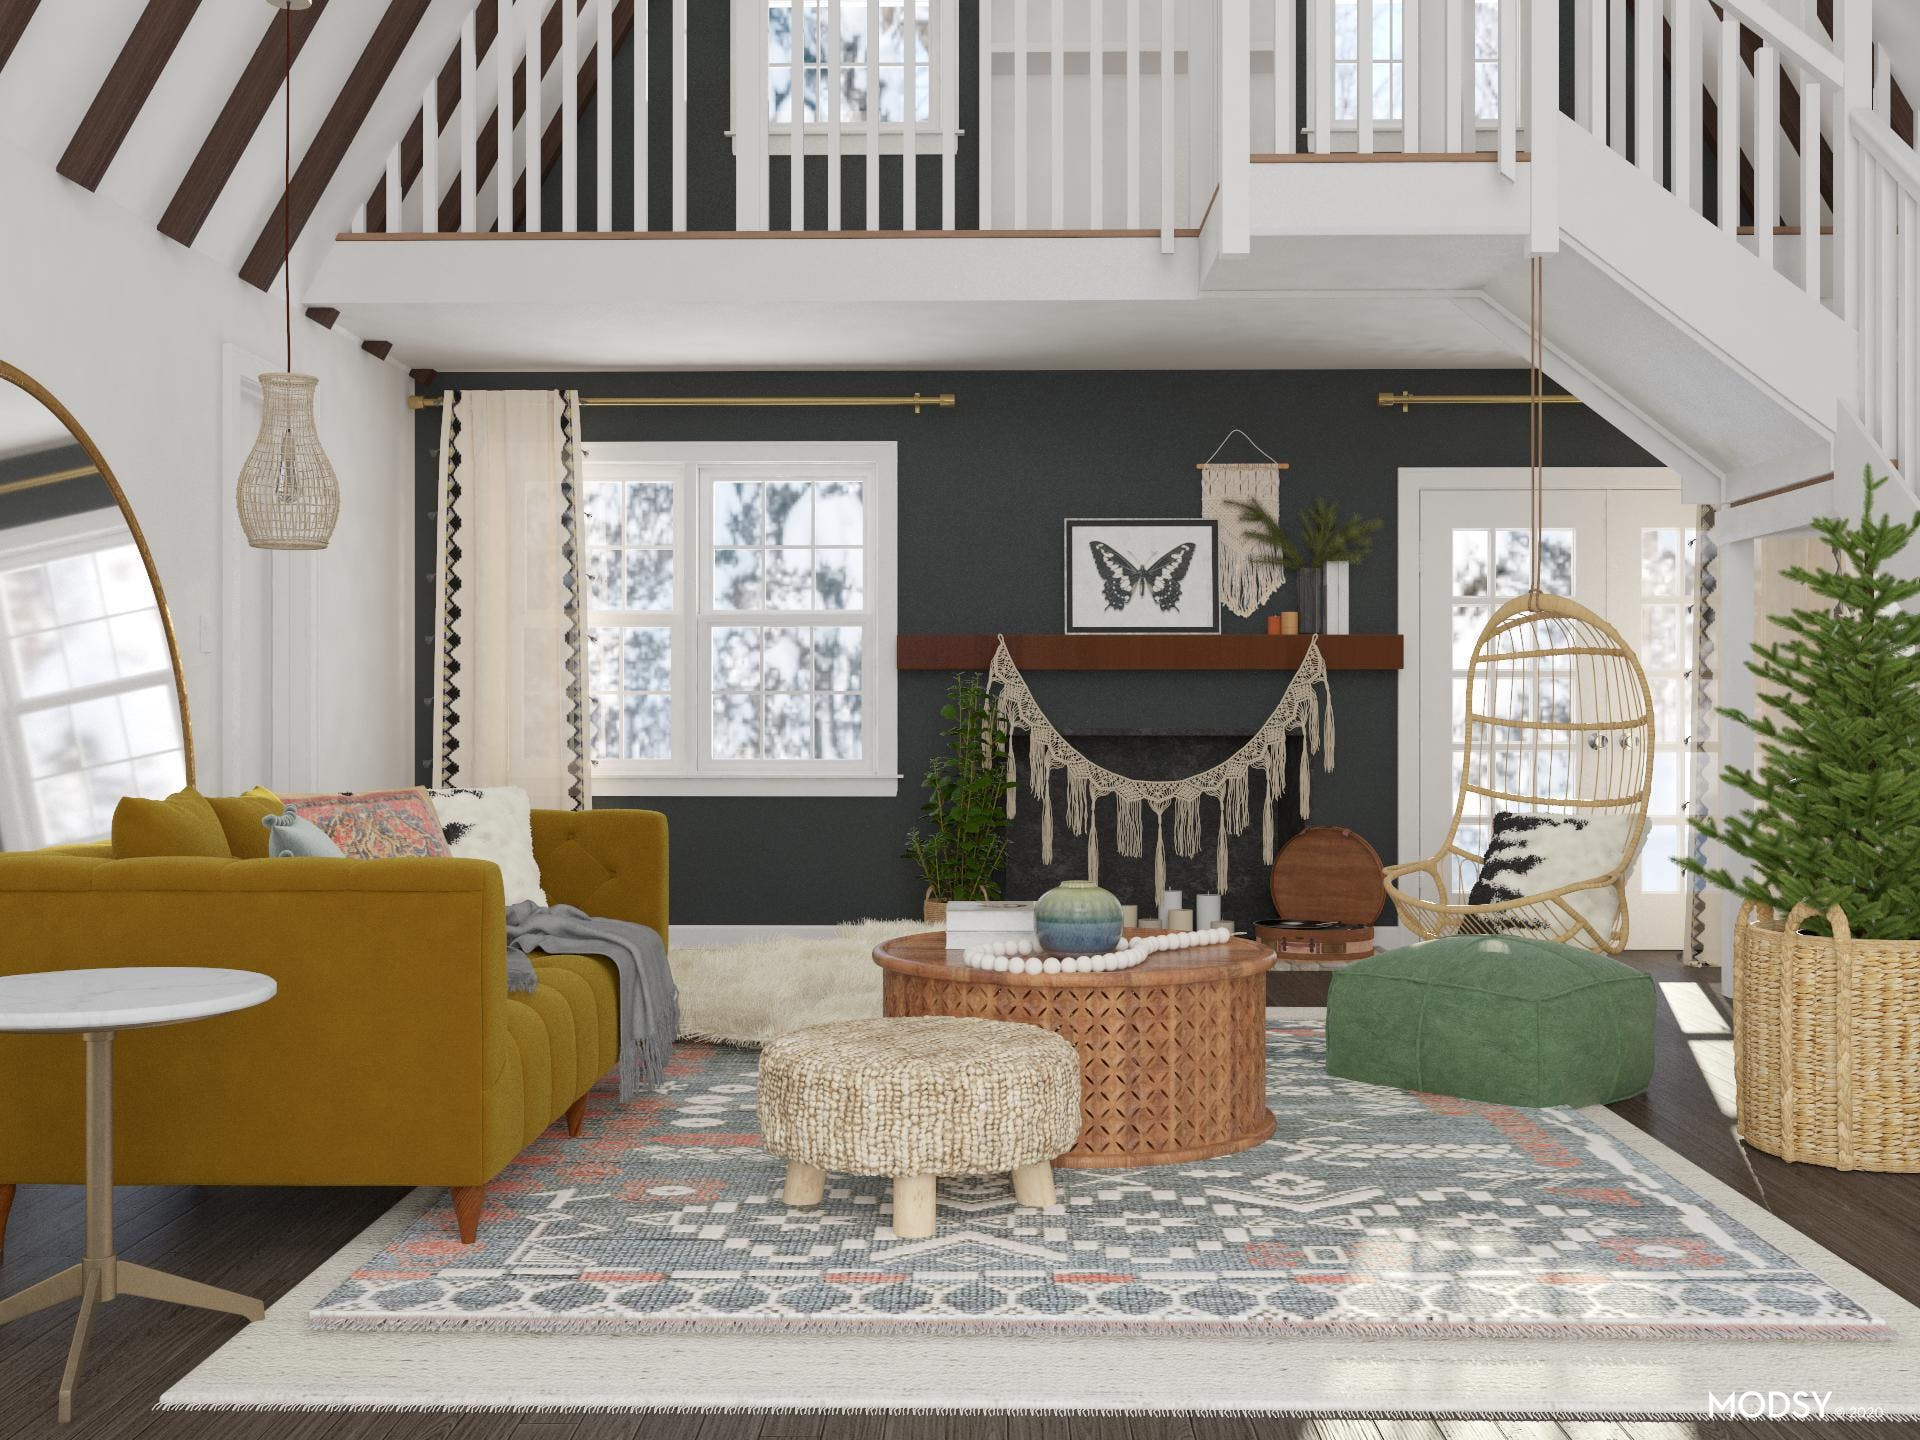 Boho Home Tour: Living Room